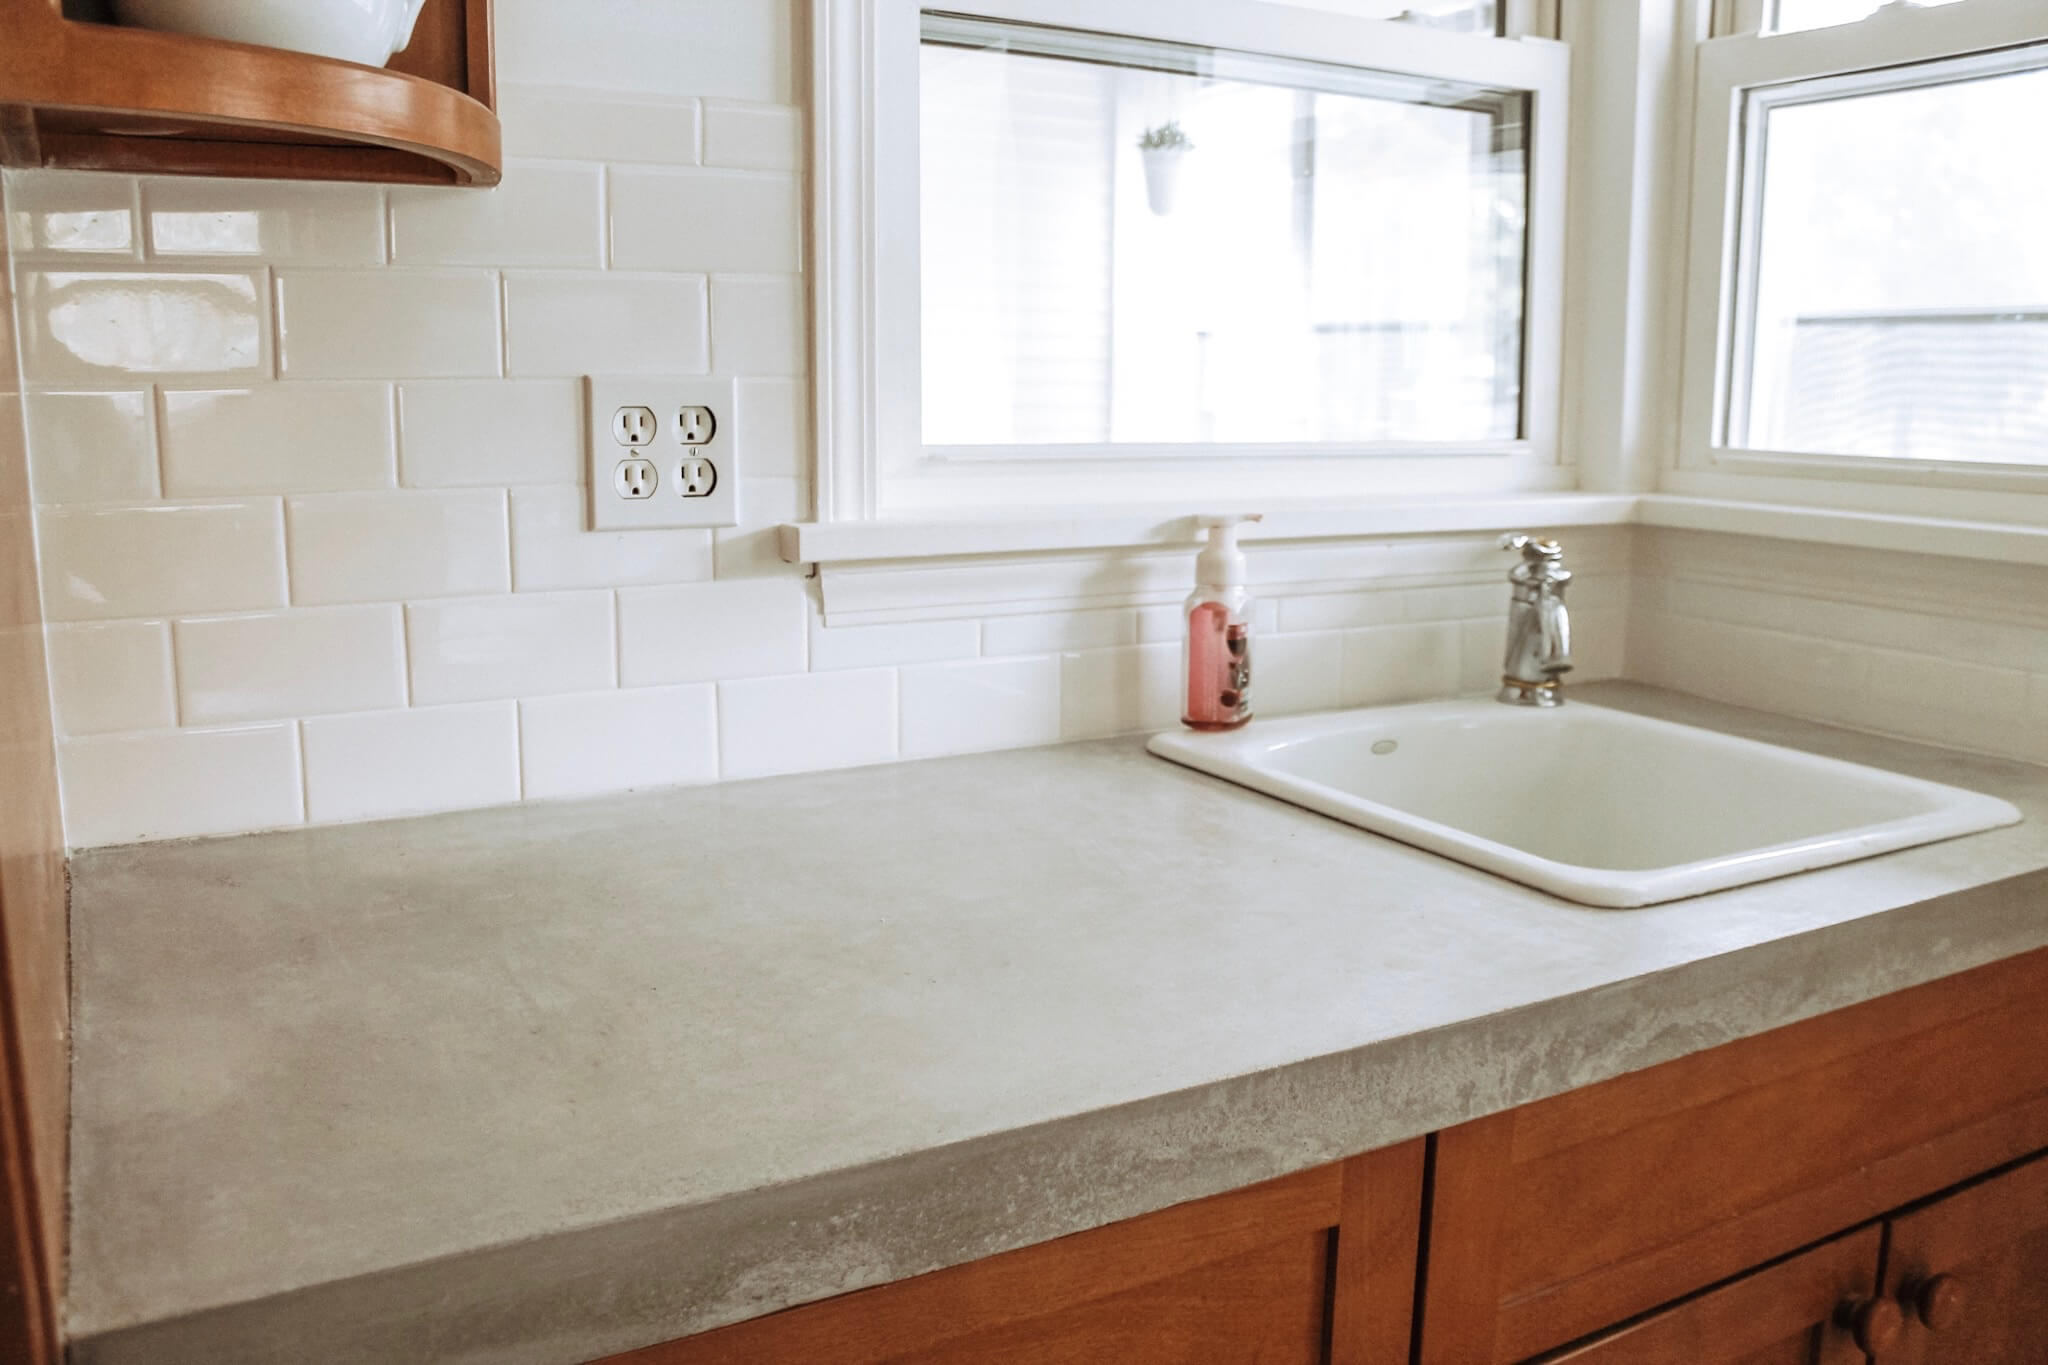 Kitchen Reno Part 1 Concrete Countertops With Zcounterforms The Definery Co